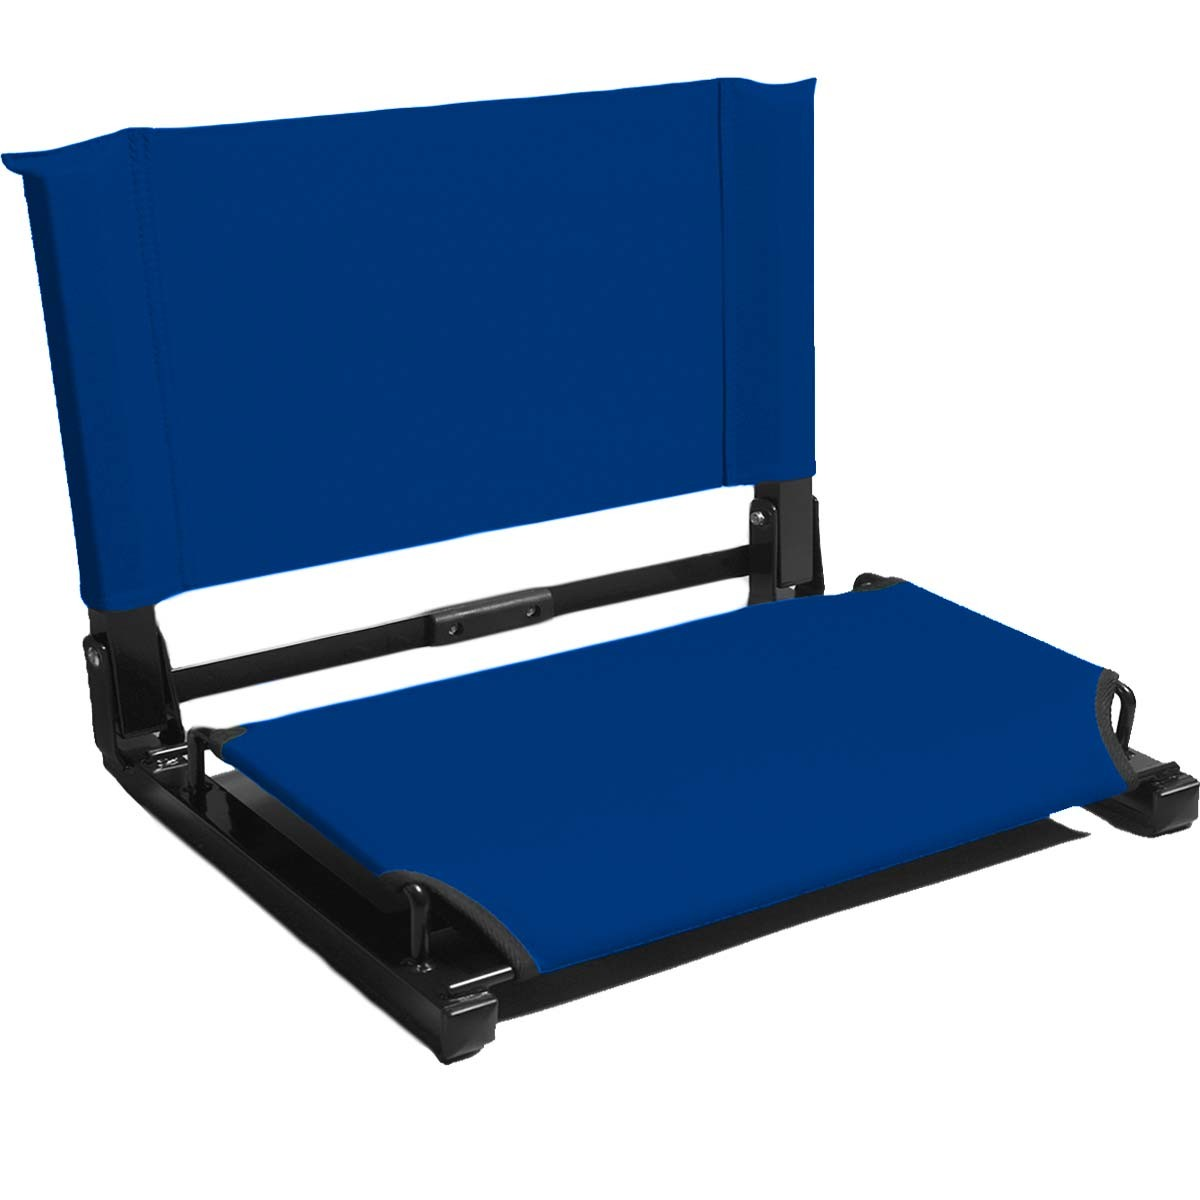 stadium chair for bleachers chicco high straps instructions bleacher seat wsc1 deluxe model 3 quot wider